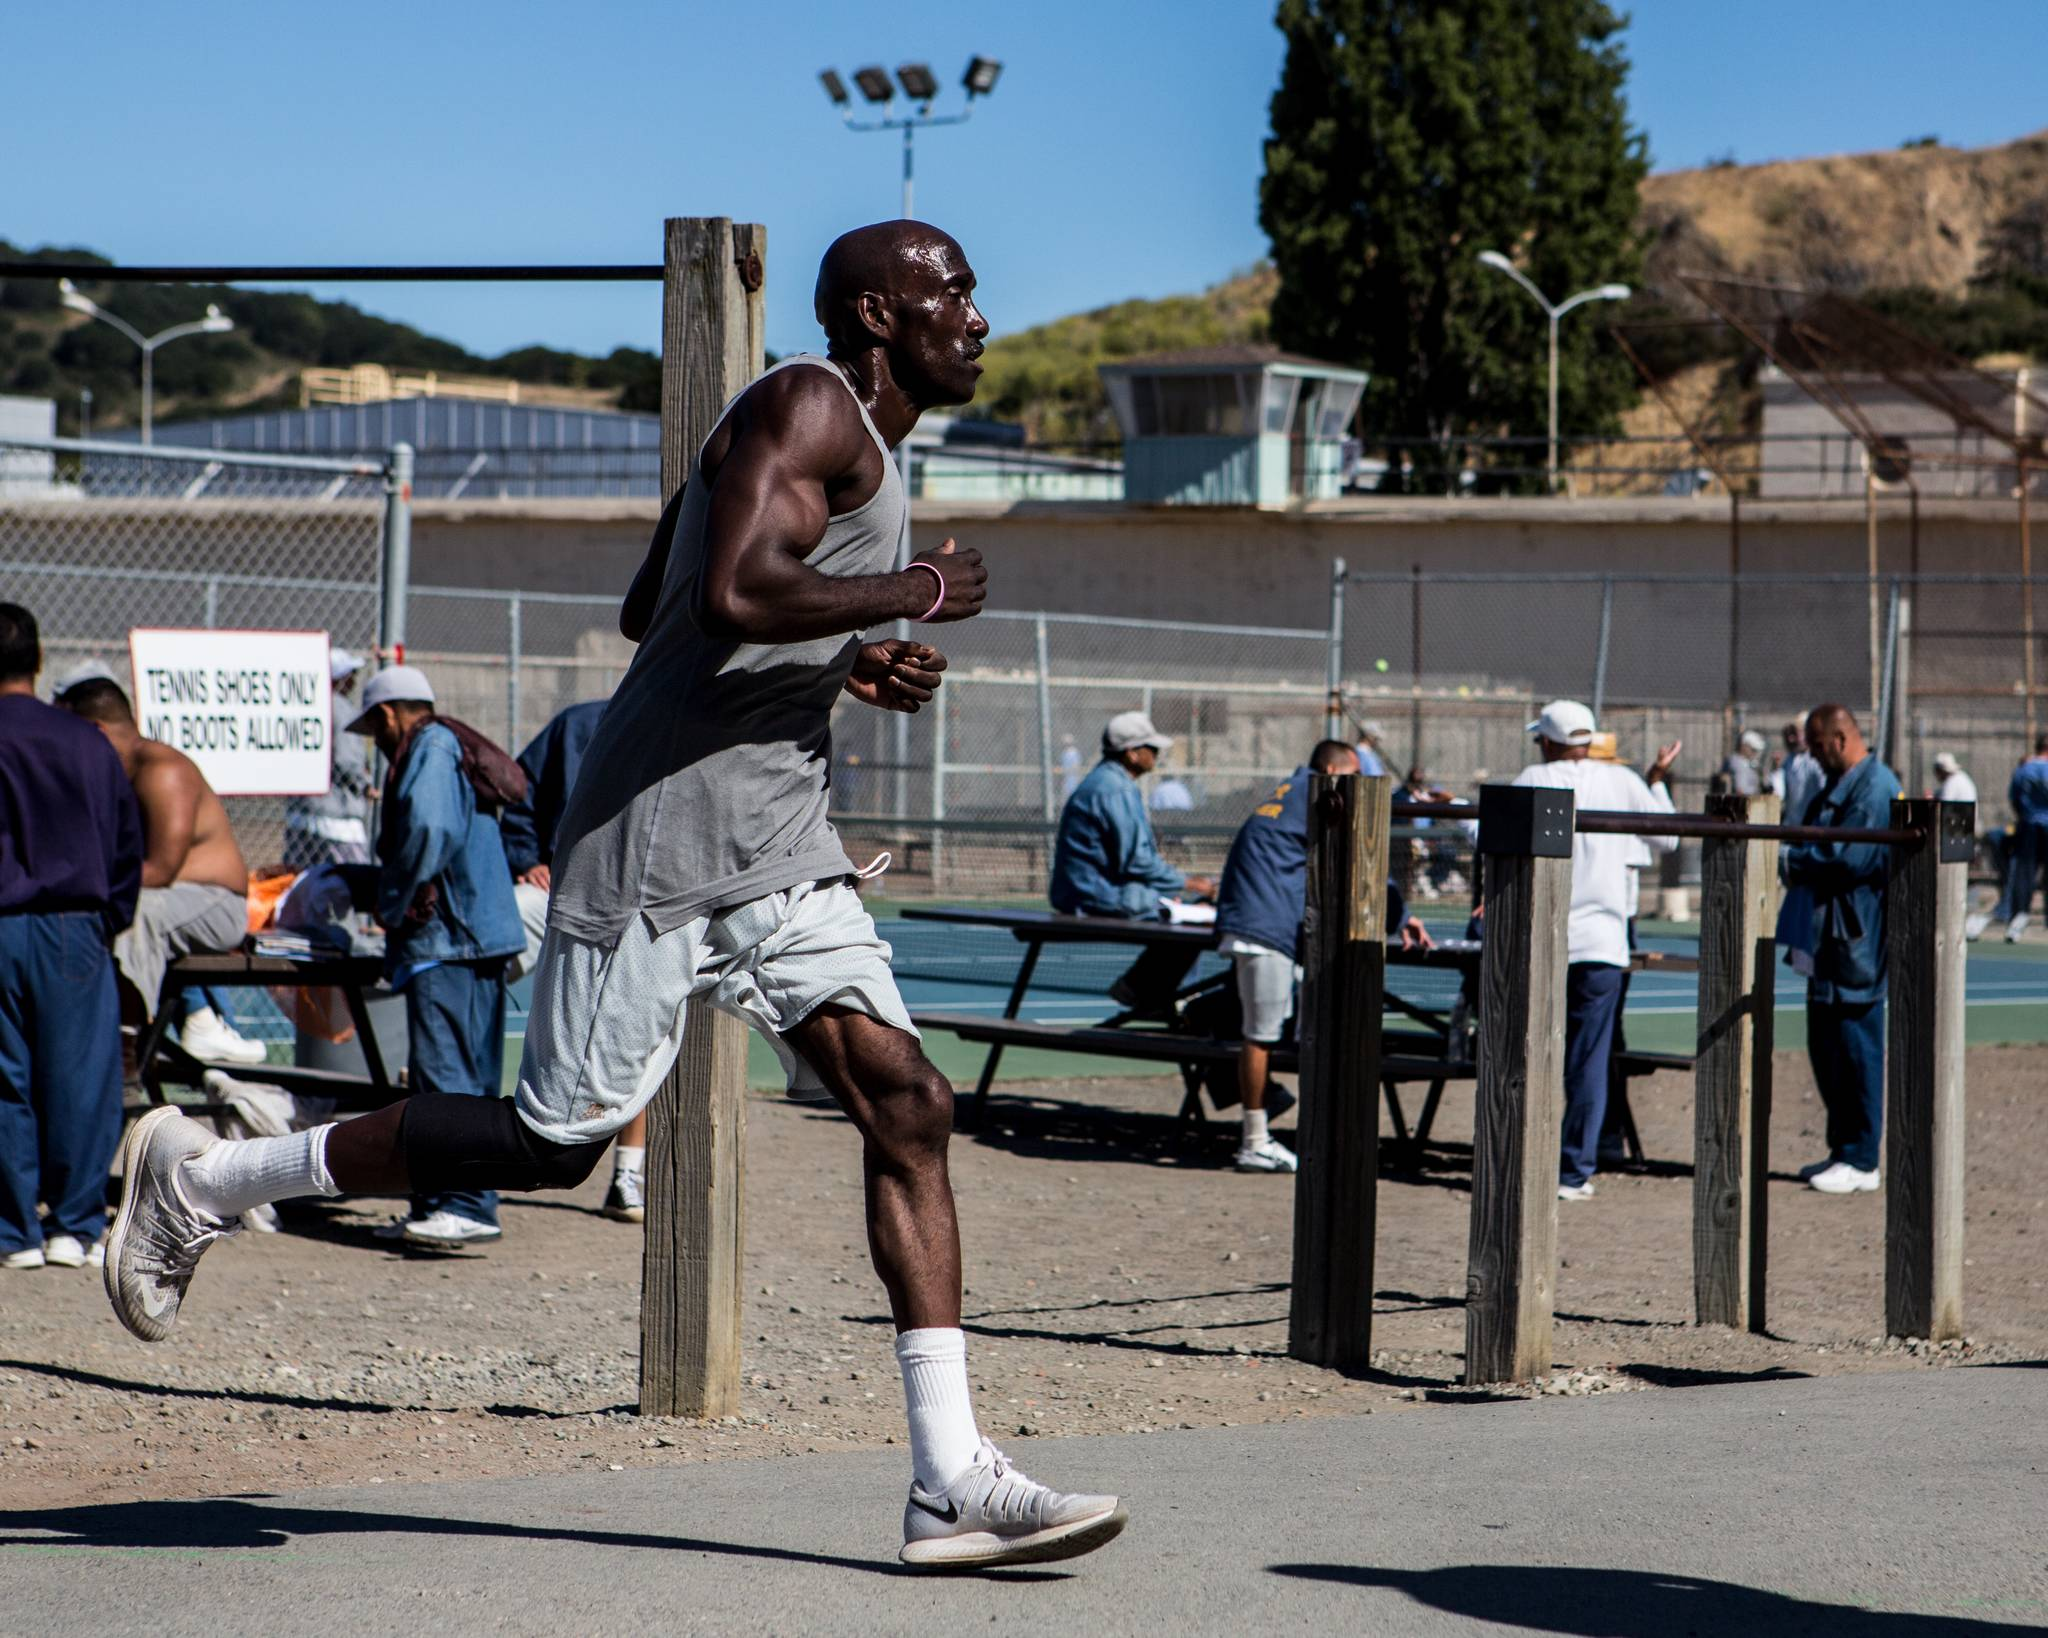 While in prison, Markelle Taylor was able run 105 non-stop loops around the prison track — the equivalent of a marathon. (Christine Yoo/Special to S.F. Examiner)